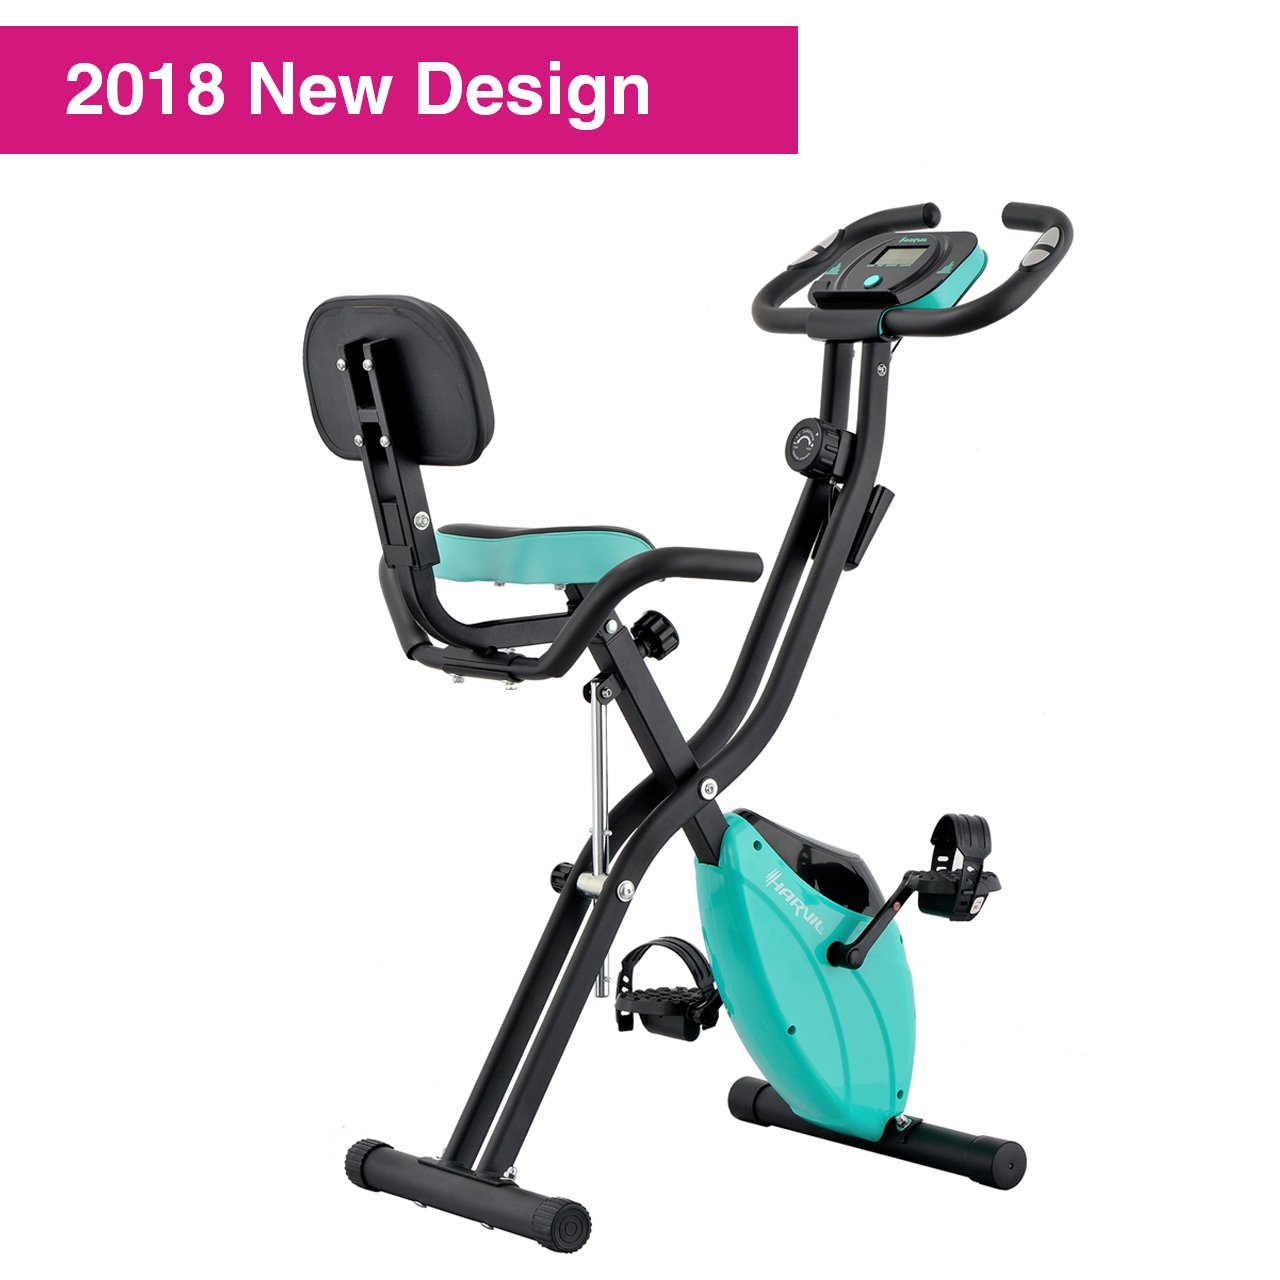 Best compact exercise bikes for small spaces review